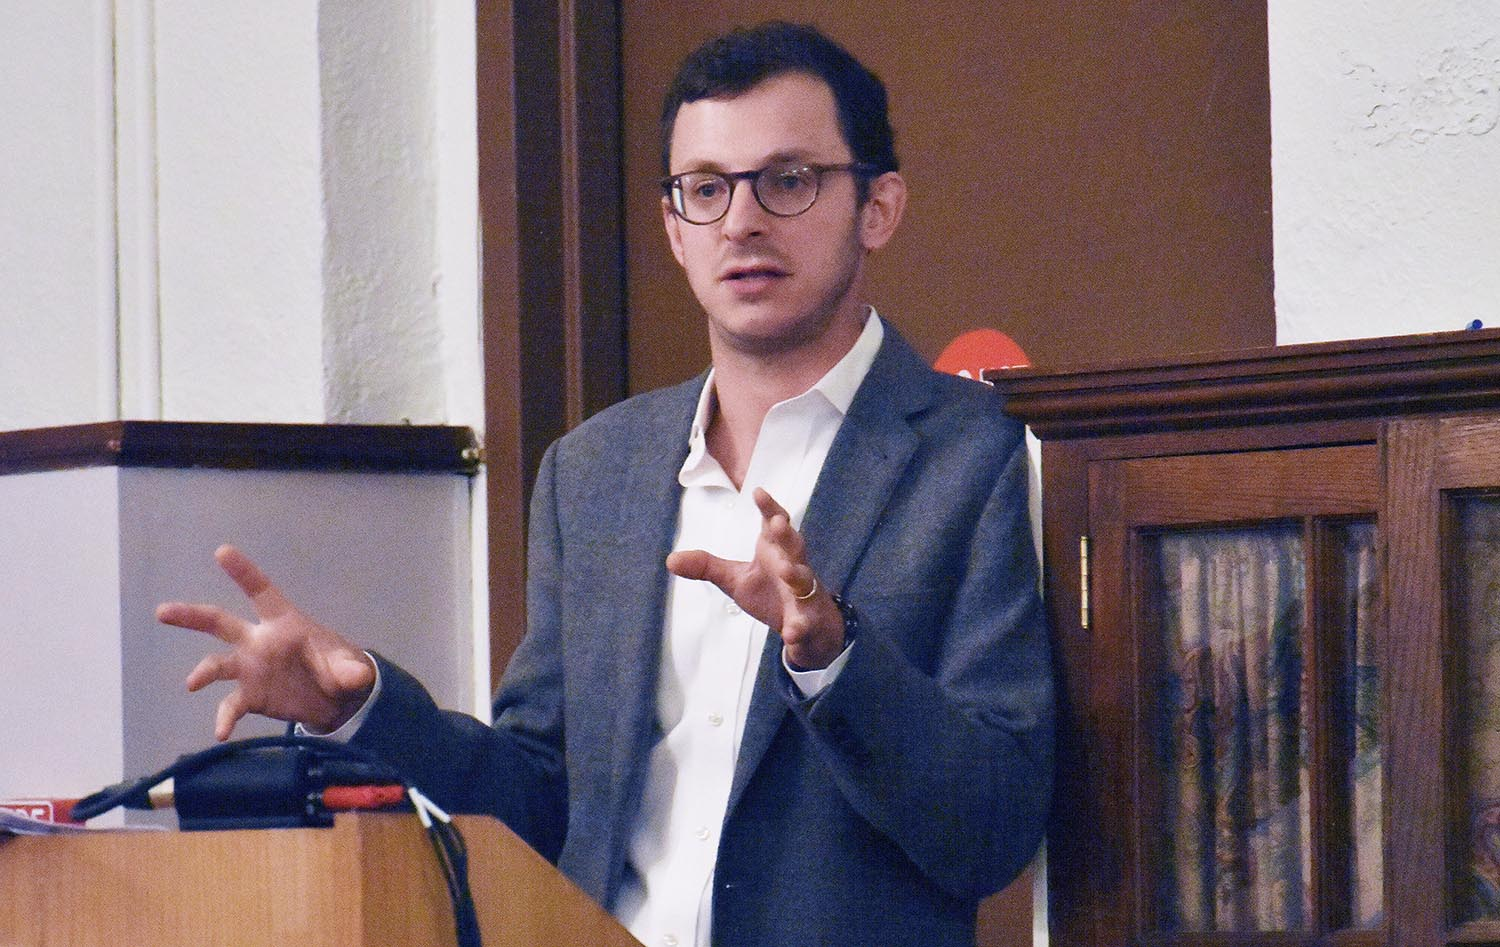 "Peck, whose research explores the tensions that exist between the modern presidency and the rule of law, spoke on ""Progress, Preservation, and the Constitution After Trump."" His talk focused on the ways in which the Constitution aids and constrains reform movements in American politics."